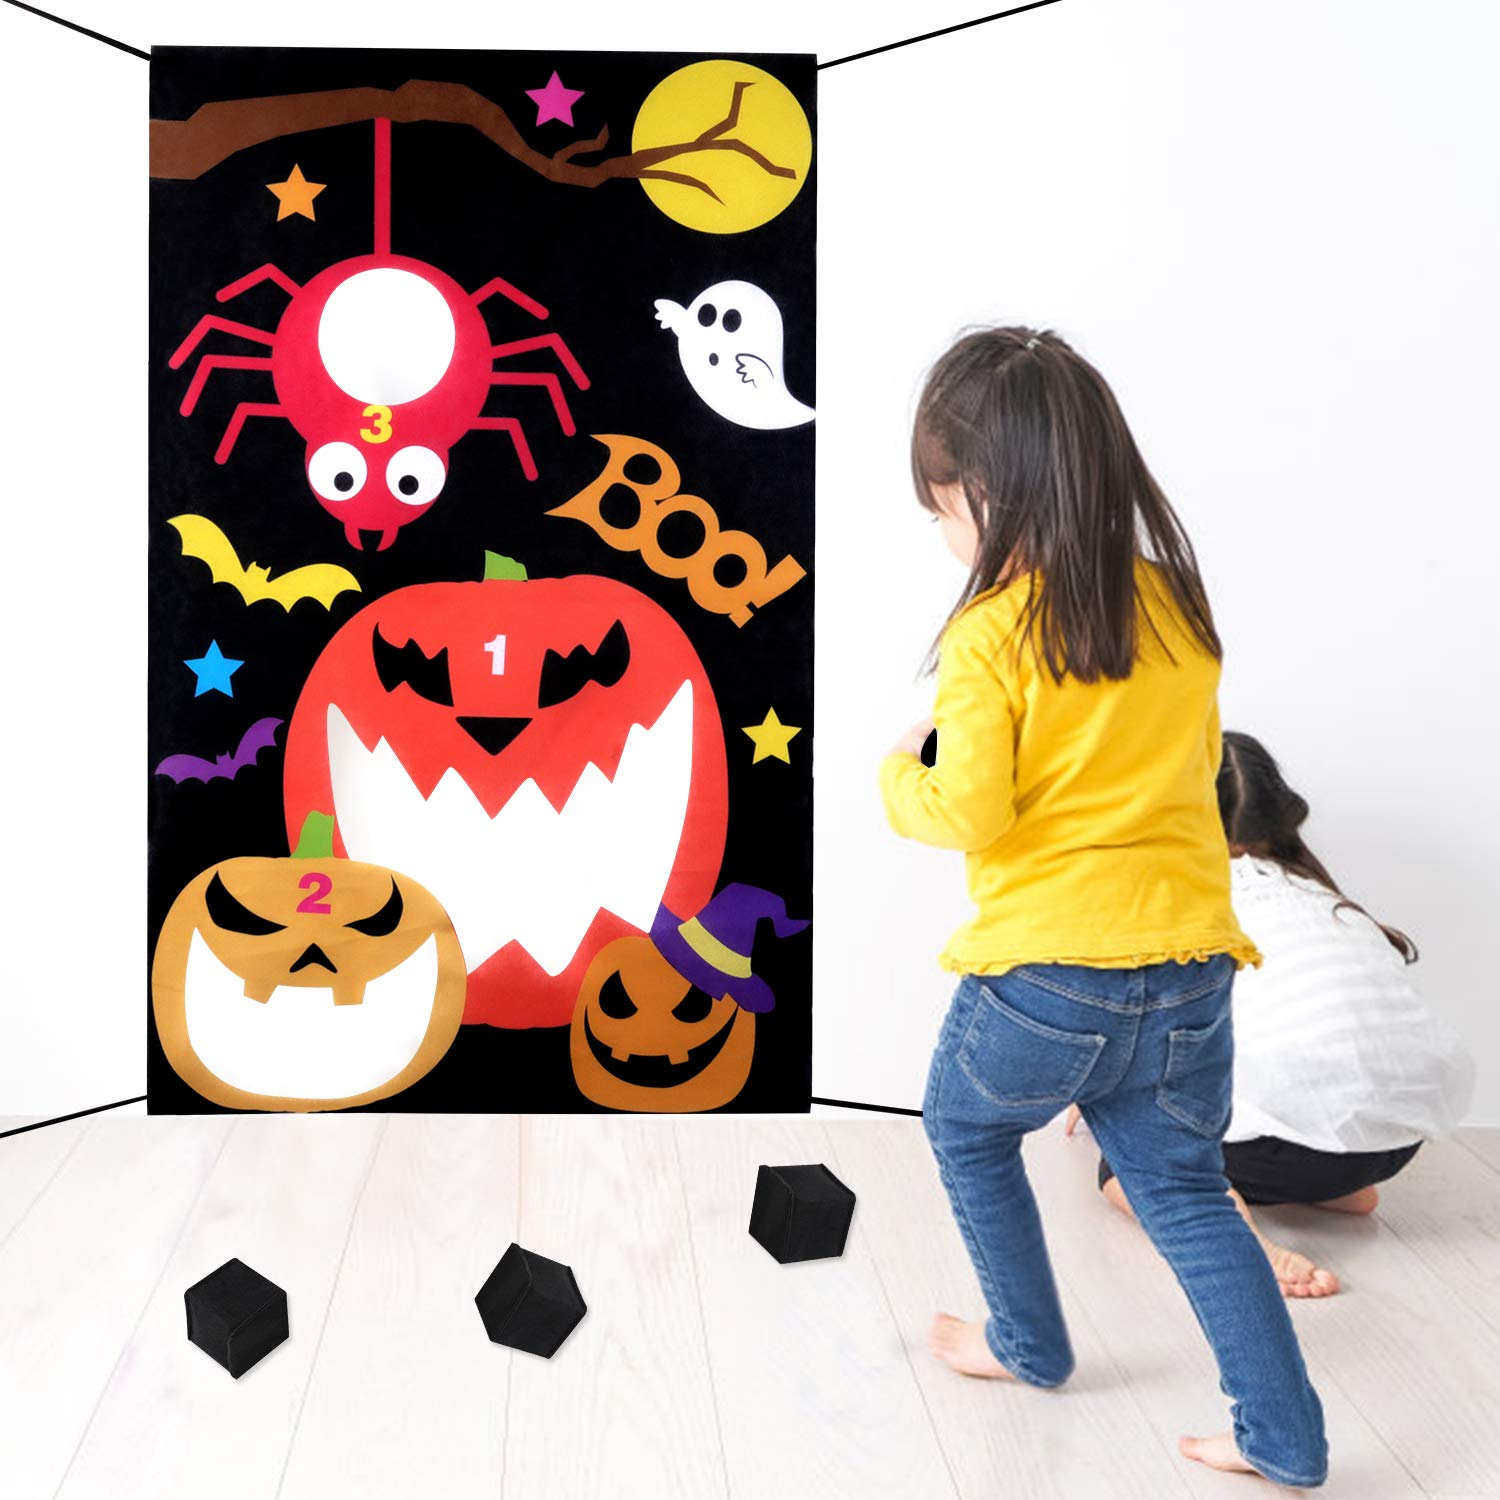 Legendog Halloween Bean Bag Toss Game with 3 Bean Bags,Fashion Halloween Toss Games for Adults and Kids, Halloween Party Decoration